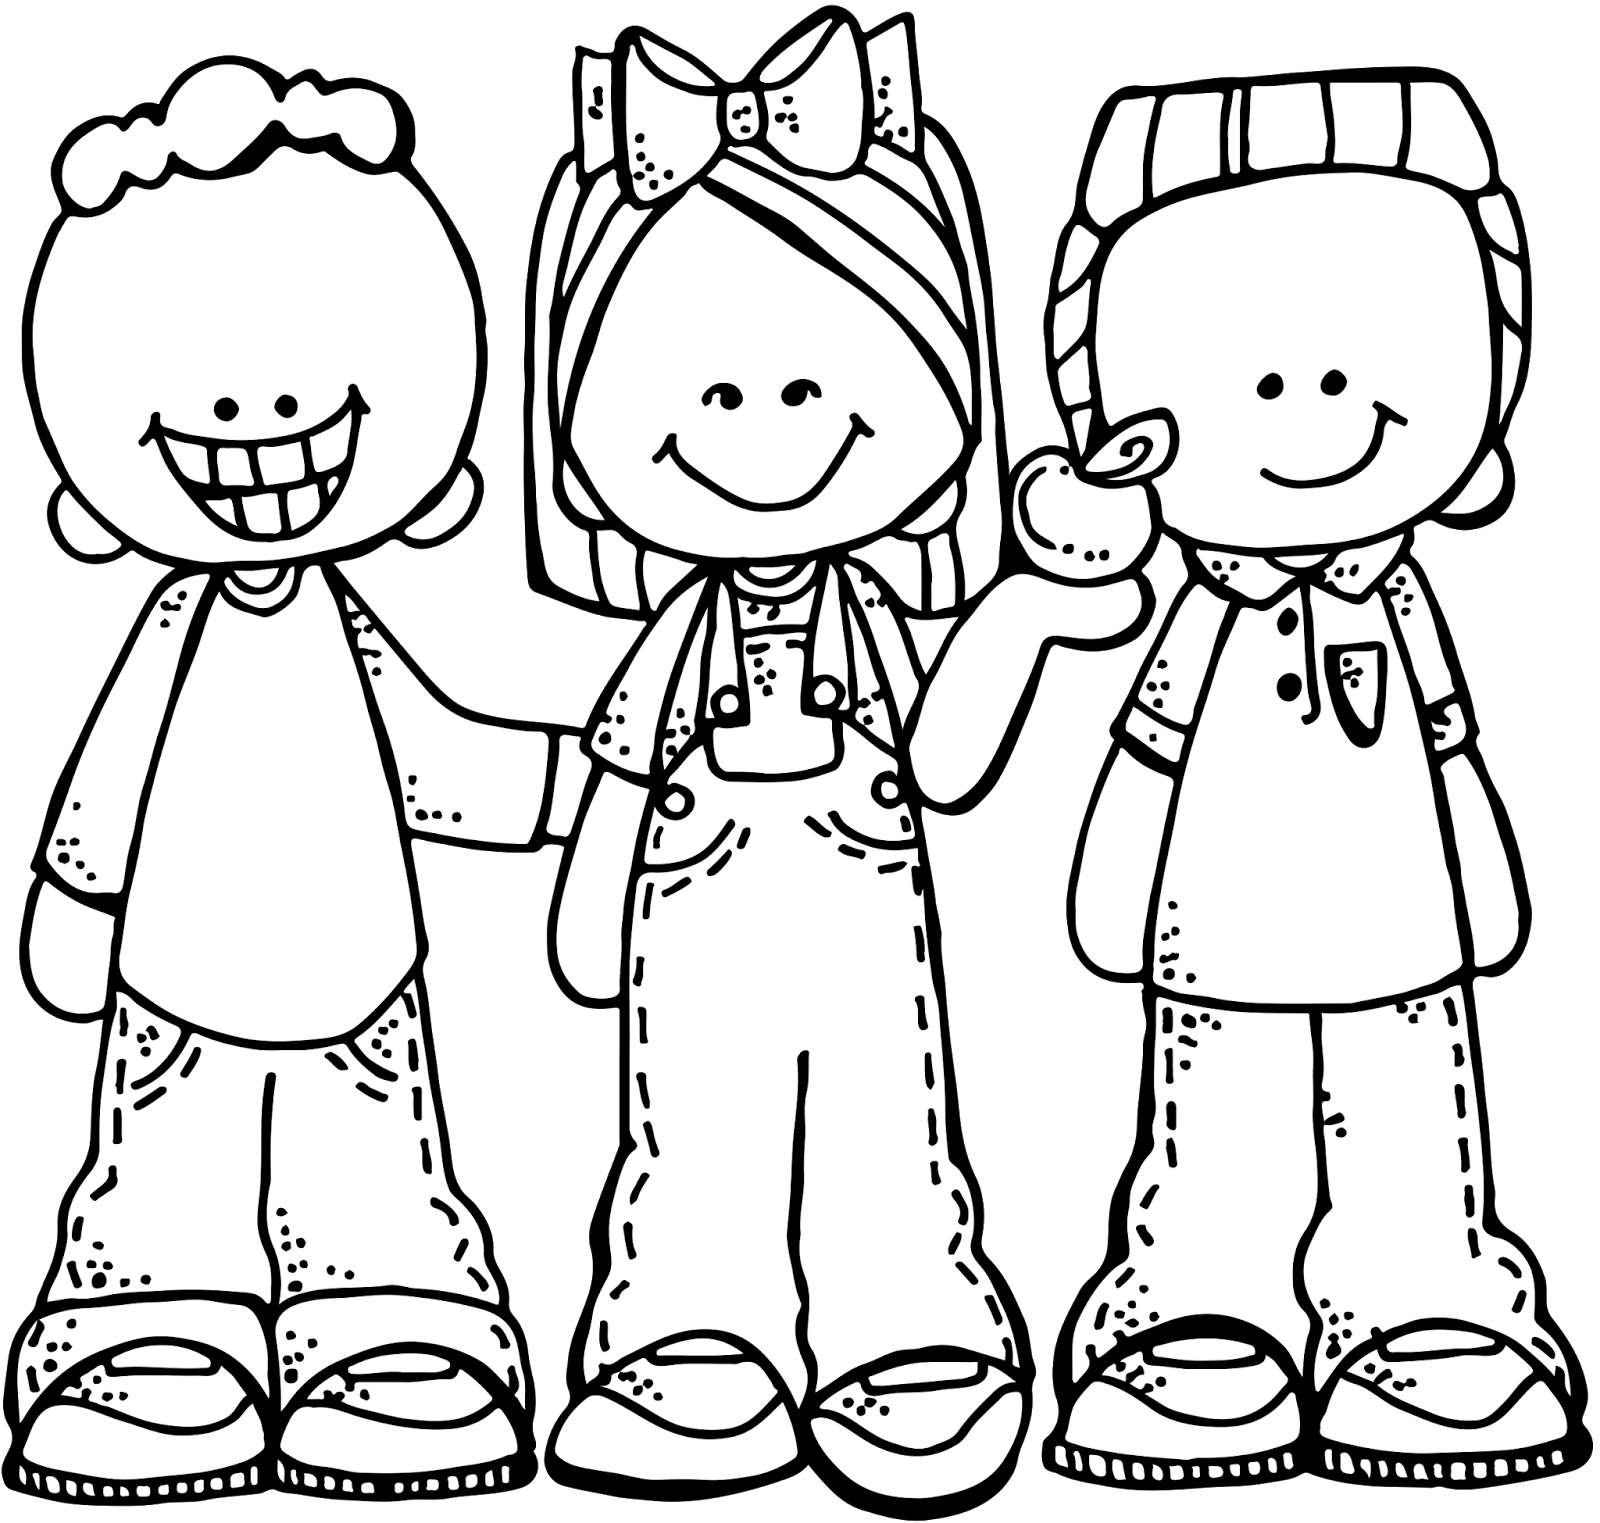 Kids with basketball laughing clipart black and white black and white stock Sunshine Clipart melonheadz - Free Clipart on Dumielauxepices.net black and white stock